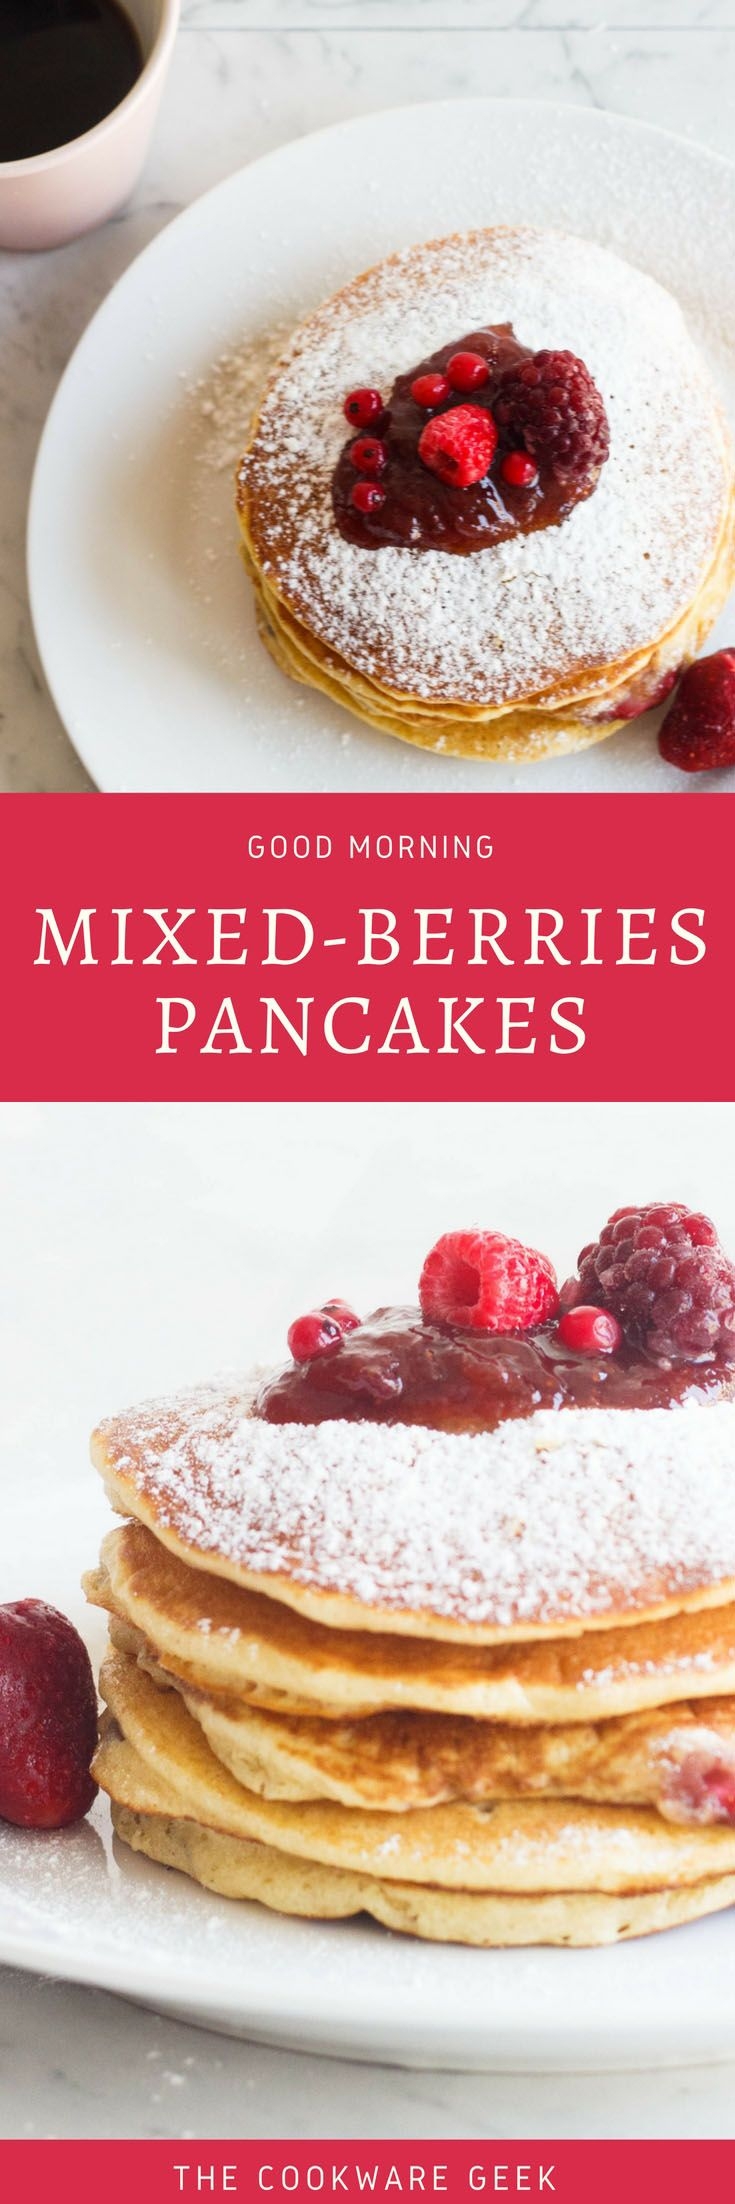 These mixed berries pancakes are a winner recipe for the Sunday brunches with your family. The pieces of berry make a splash of acidity in your mouth.